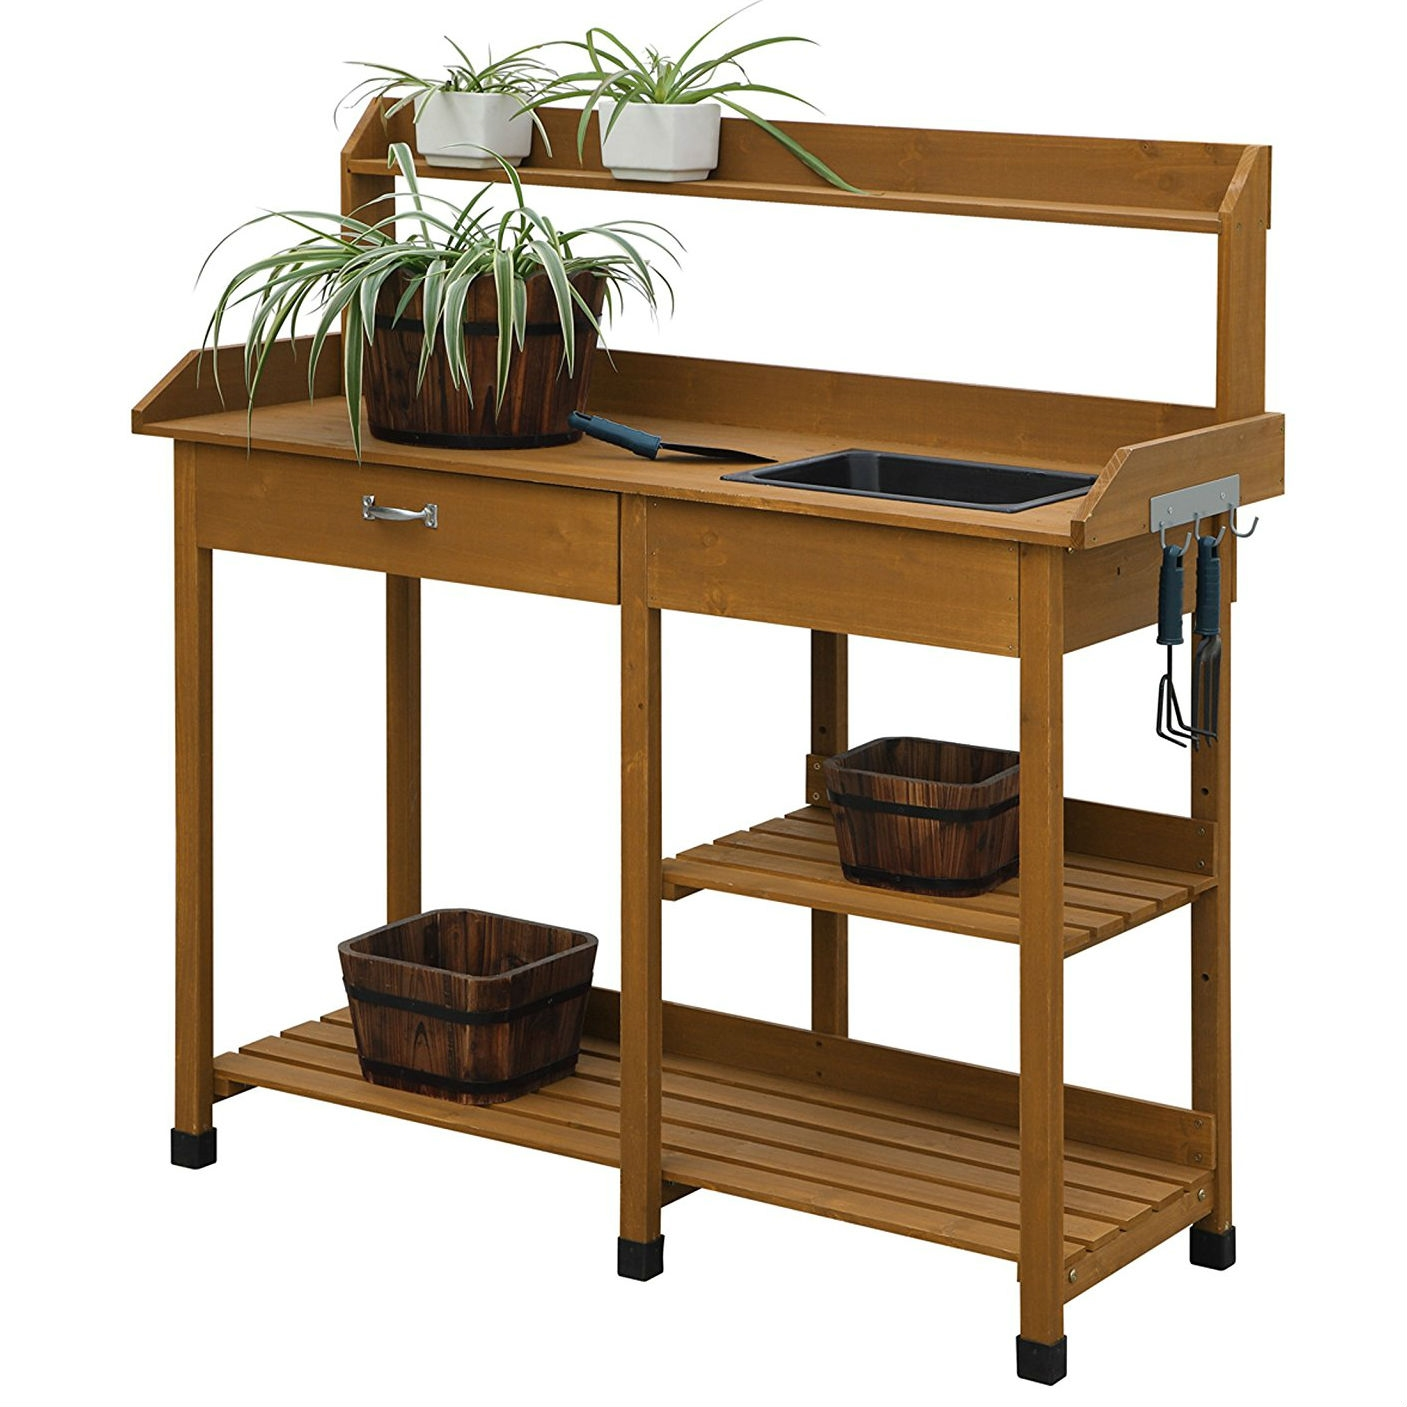 wooden potting bench garden work table with sink and shelving in light oak finish - Garden Work Bench